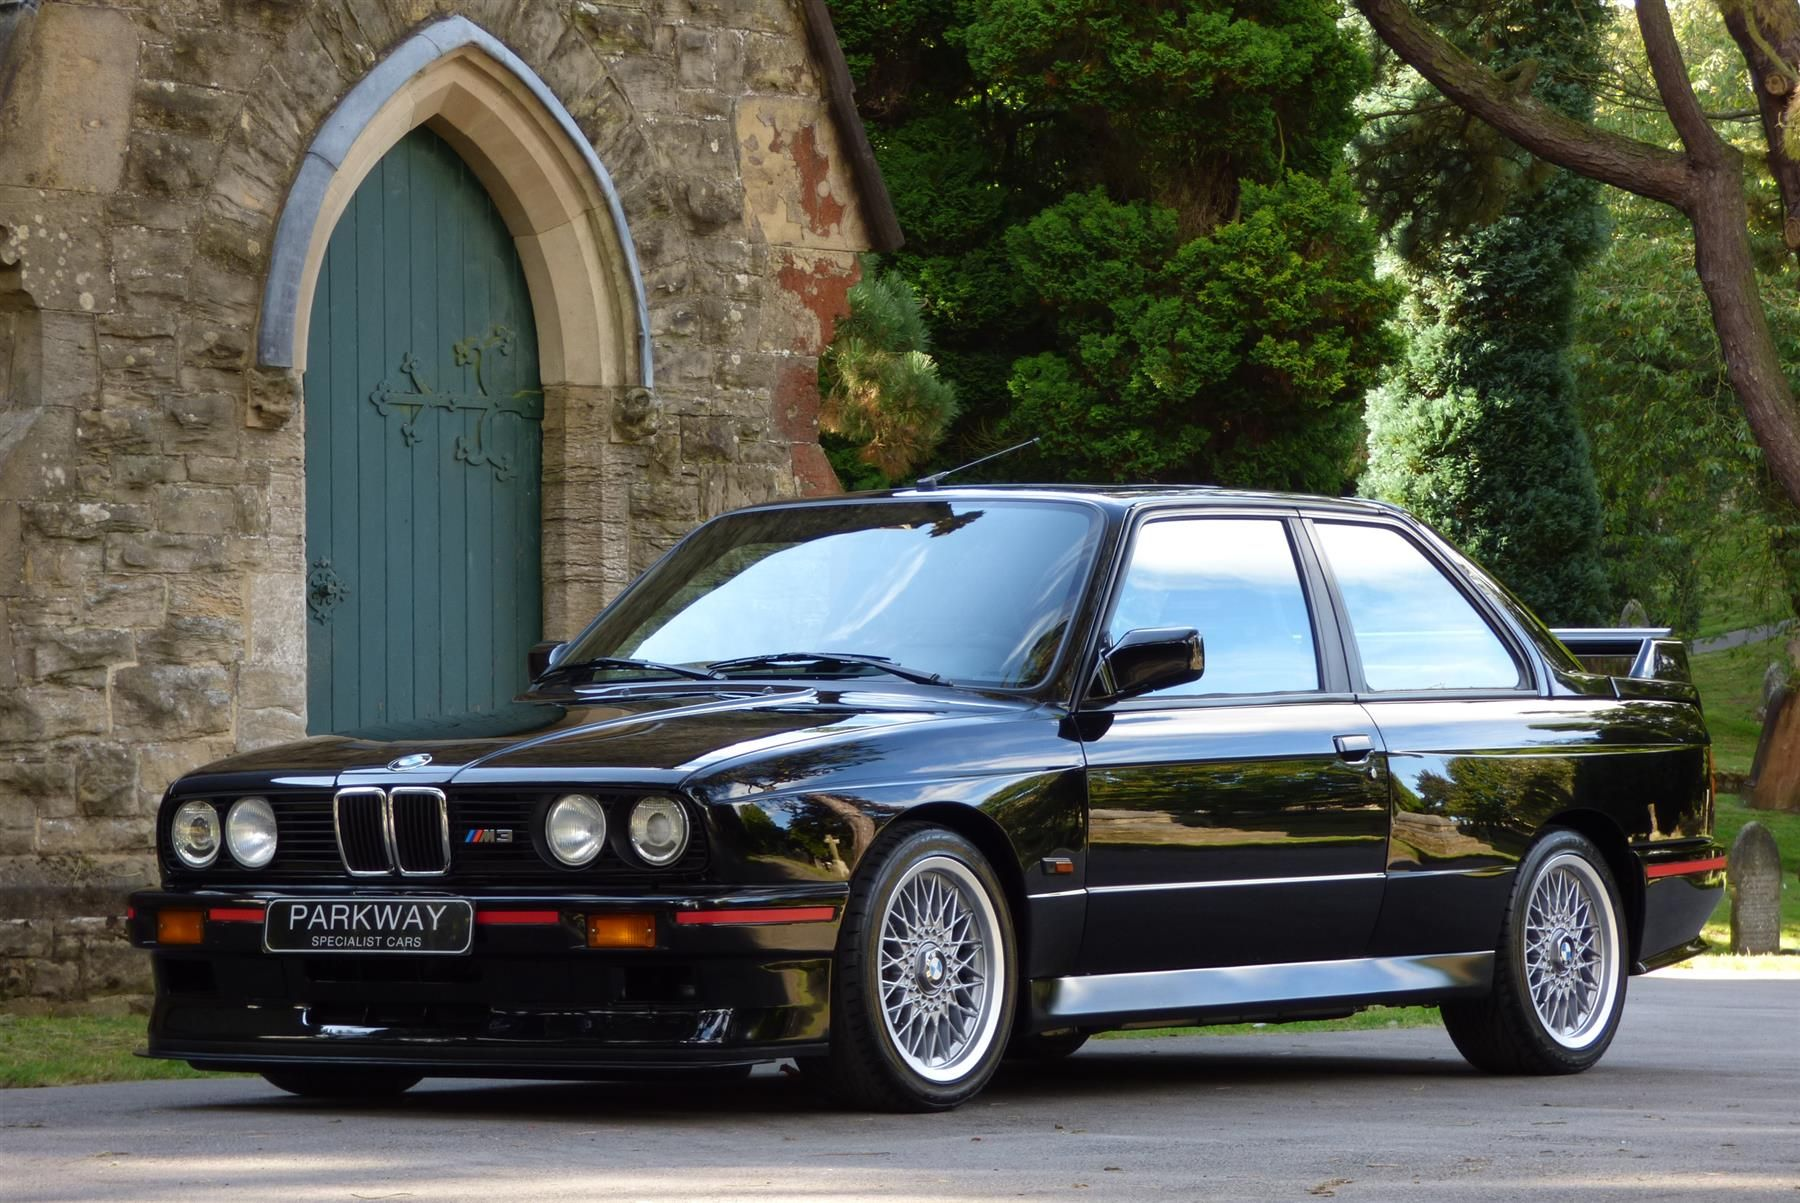 Used 1990 Bmw E30 M3 86 92 M3 For Sale In Nottinghamshire